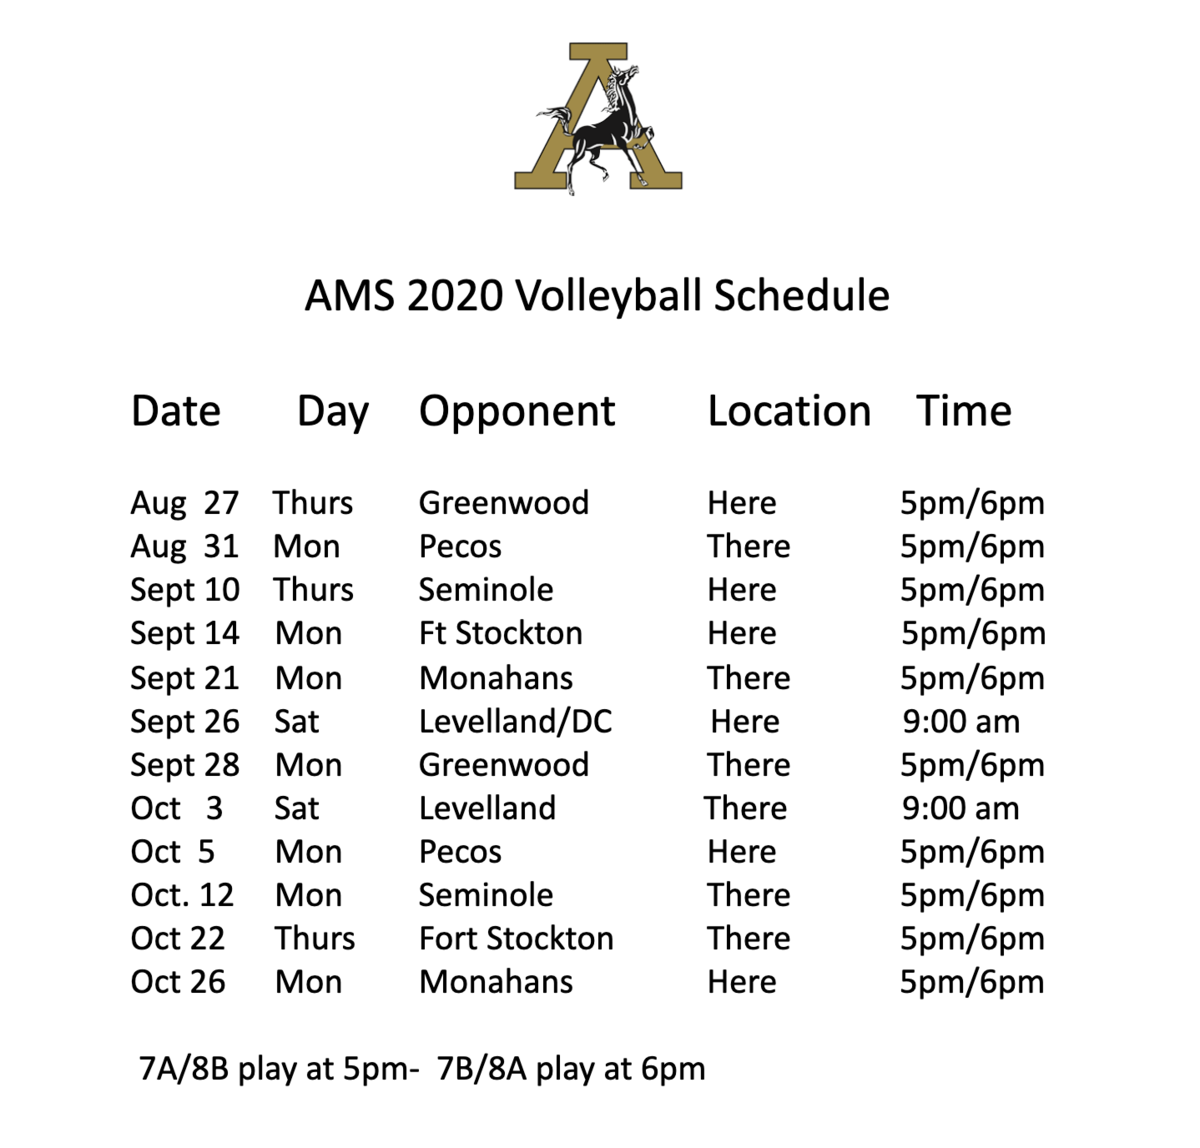 AMS Volleyball schedule